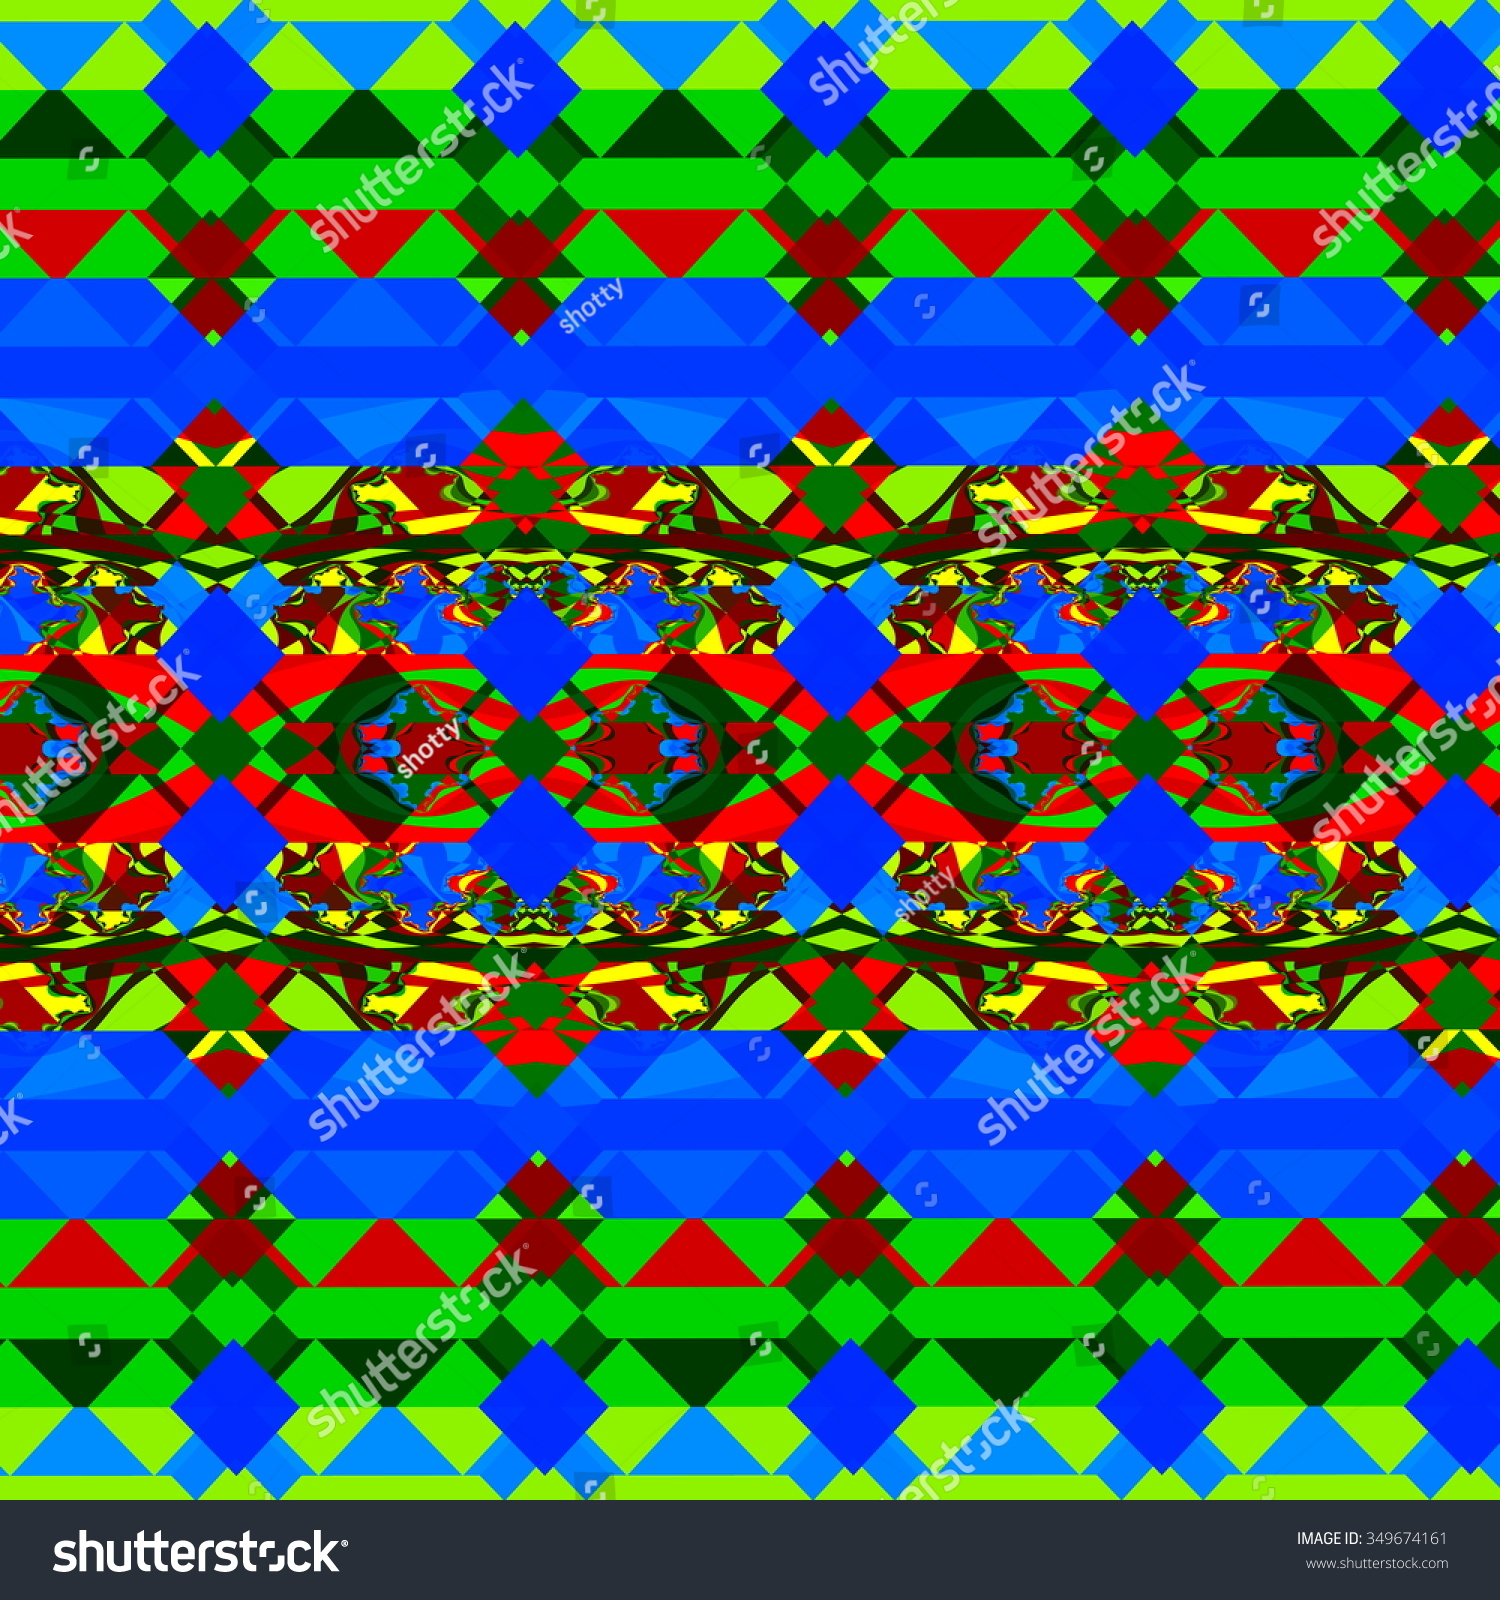 Psychedelic Green Blue Shapes Odd Style Stock Illustration 349674161 ...